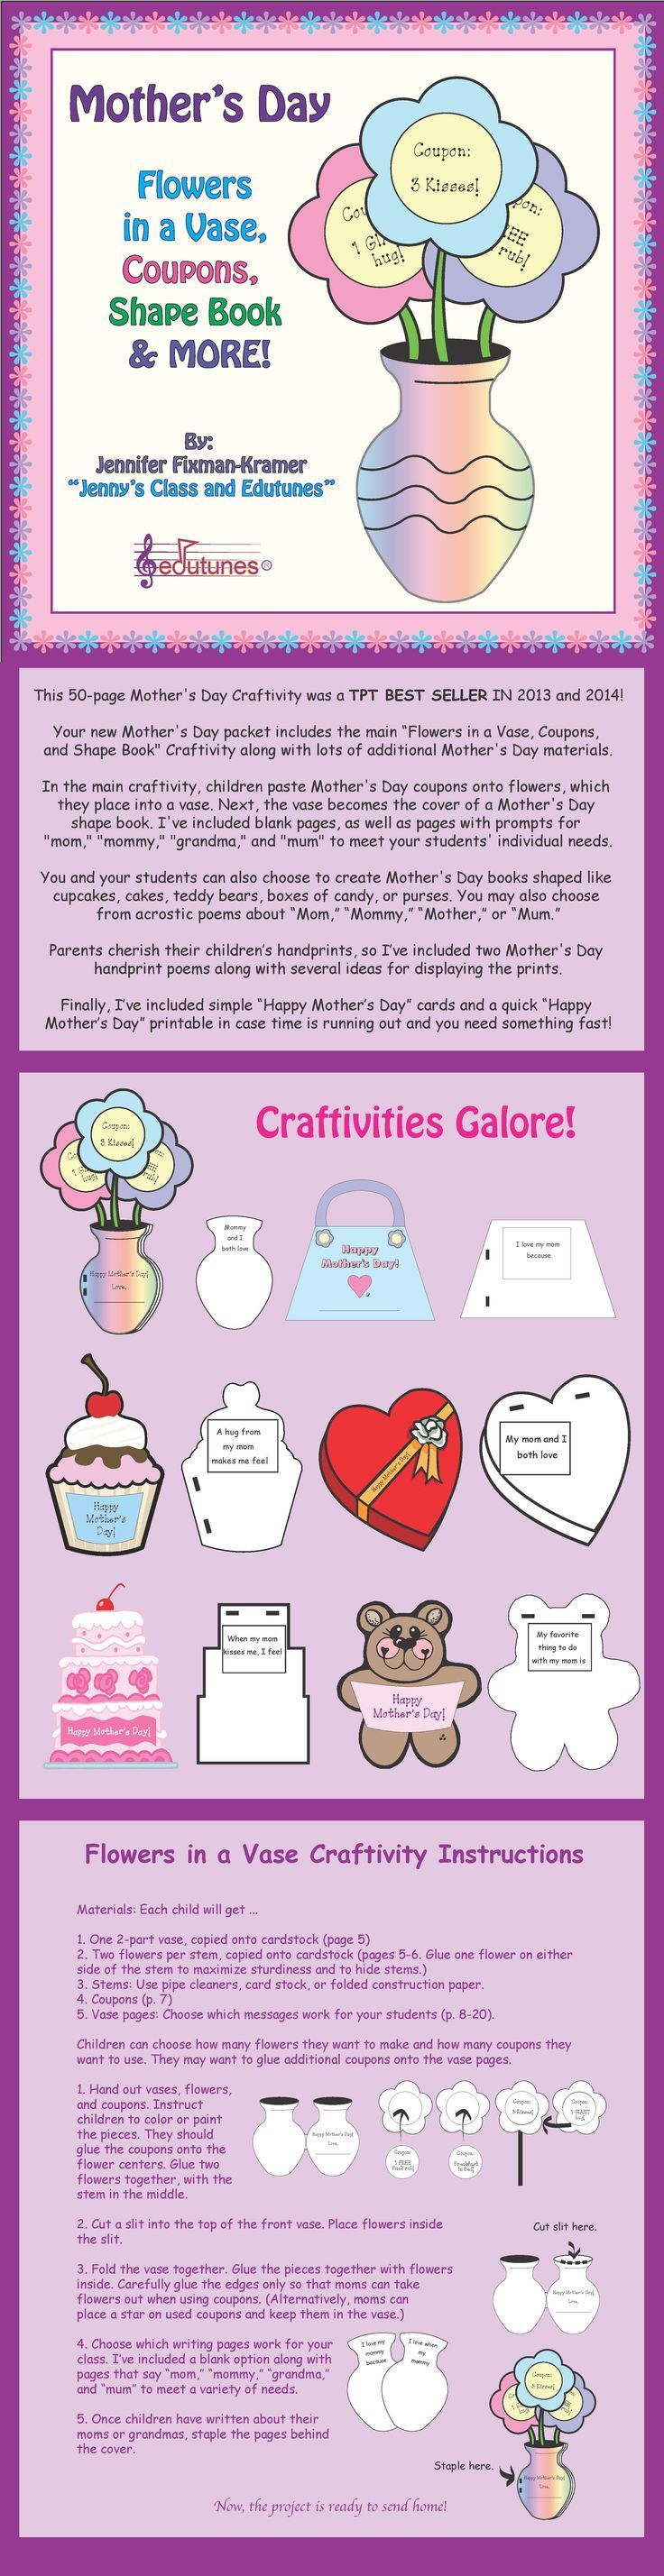 Mother's Day Best Seller! These Mother's Day craft activities are perfect for your students to create an ideal gift this Mother's Day!